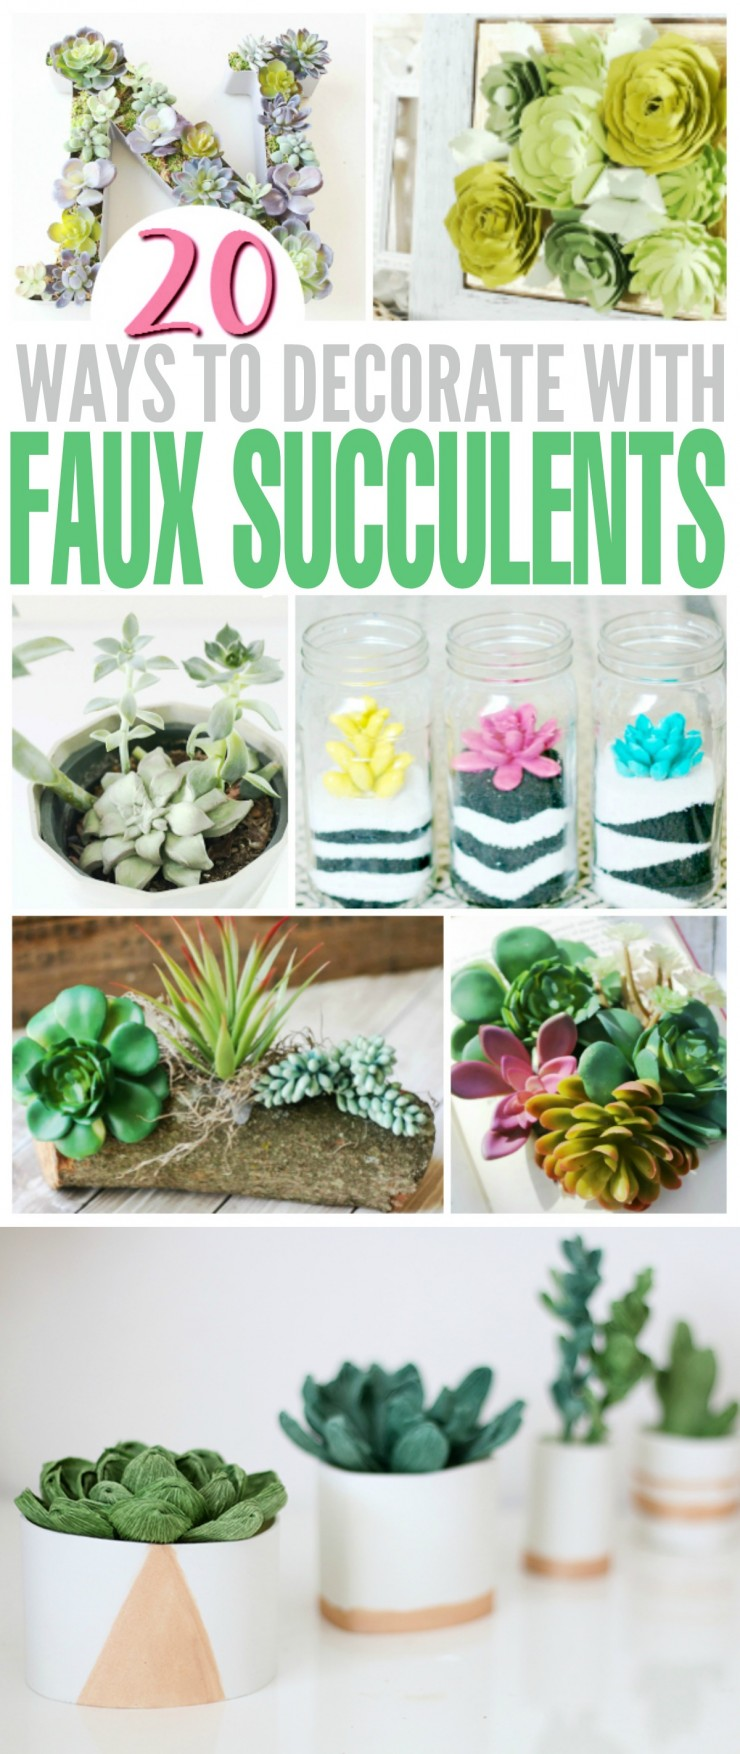 Succulents are a huge trend right now, and everyone seems to have a fascination with unique projects making use of succulents. Unfortunately succulents can get expensive to purchase, however faux succulents can be a great way to save a little cash and make trendy, fuss-free home décor pieces.